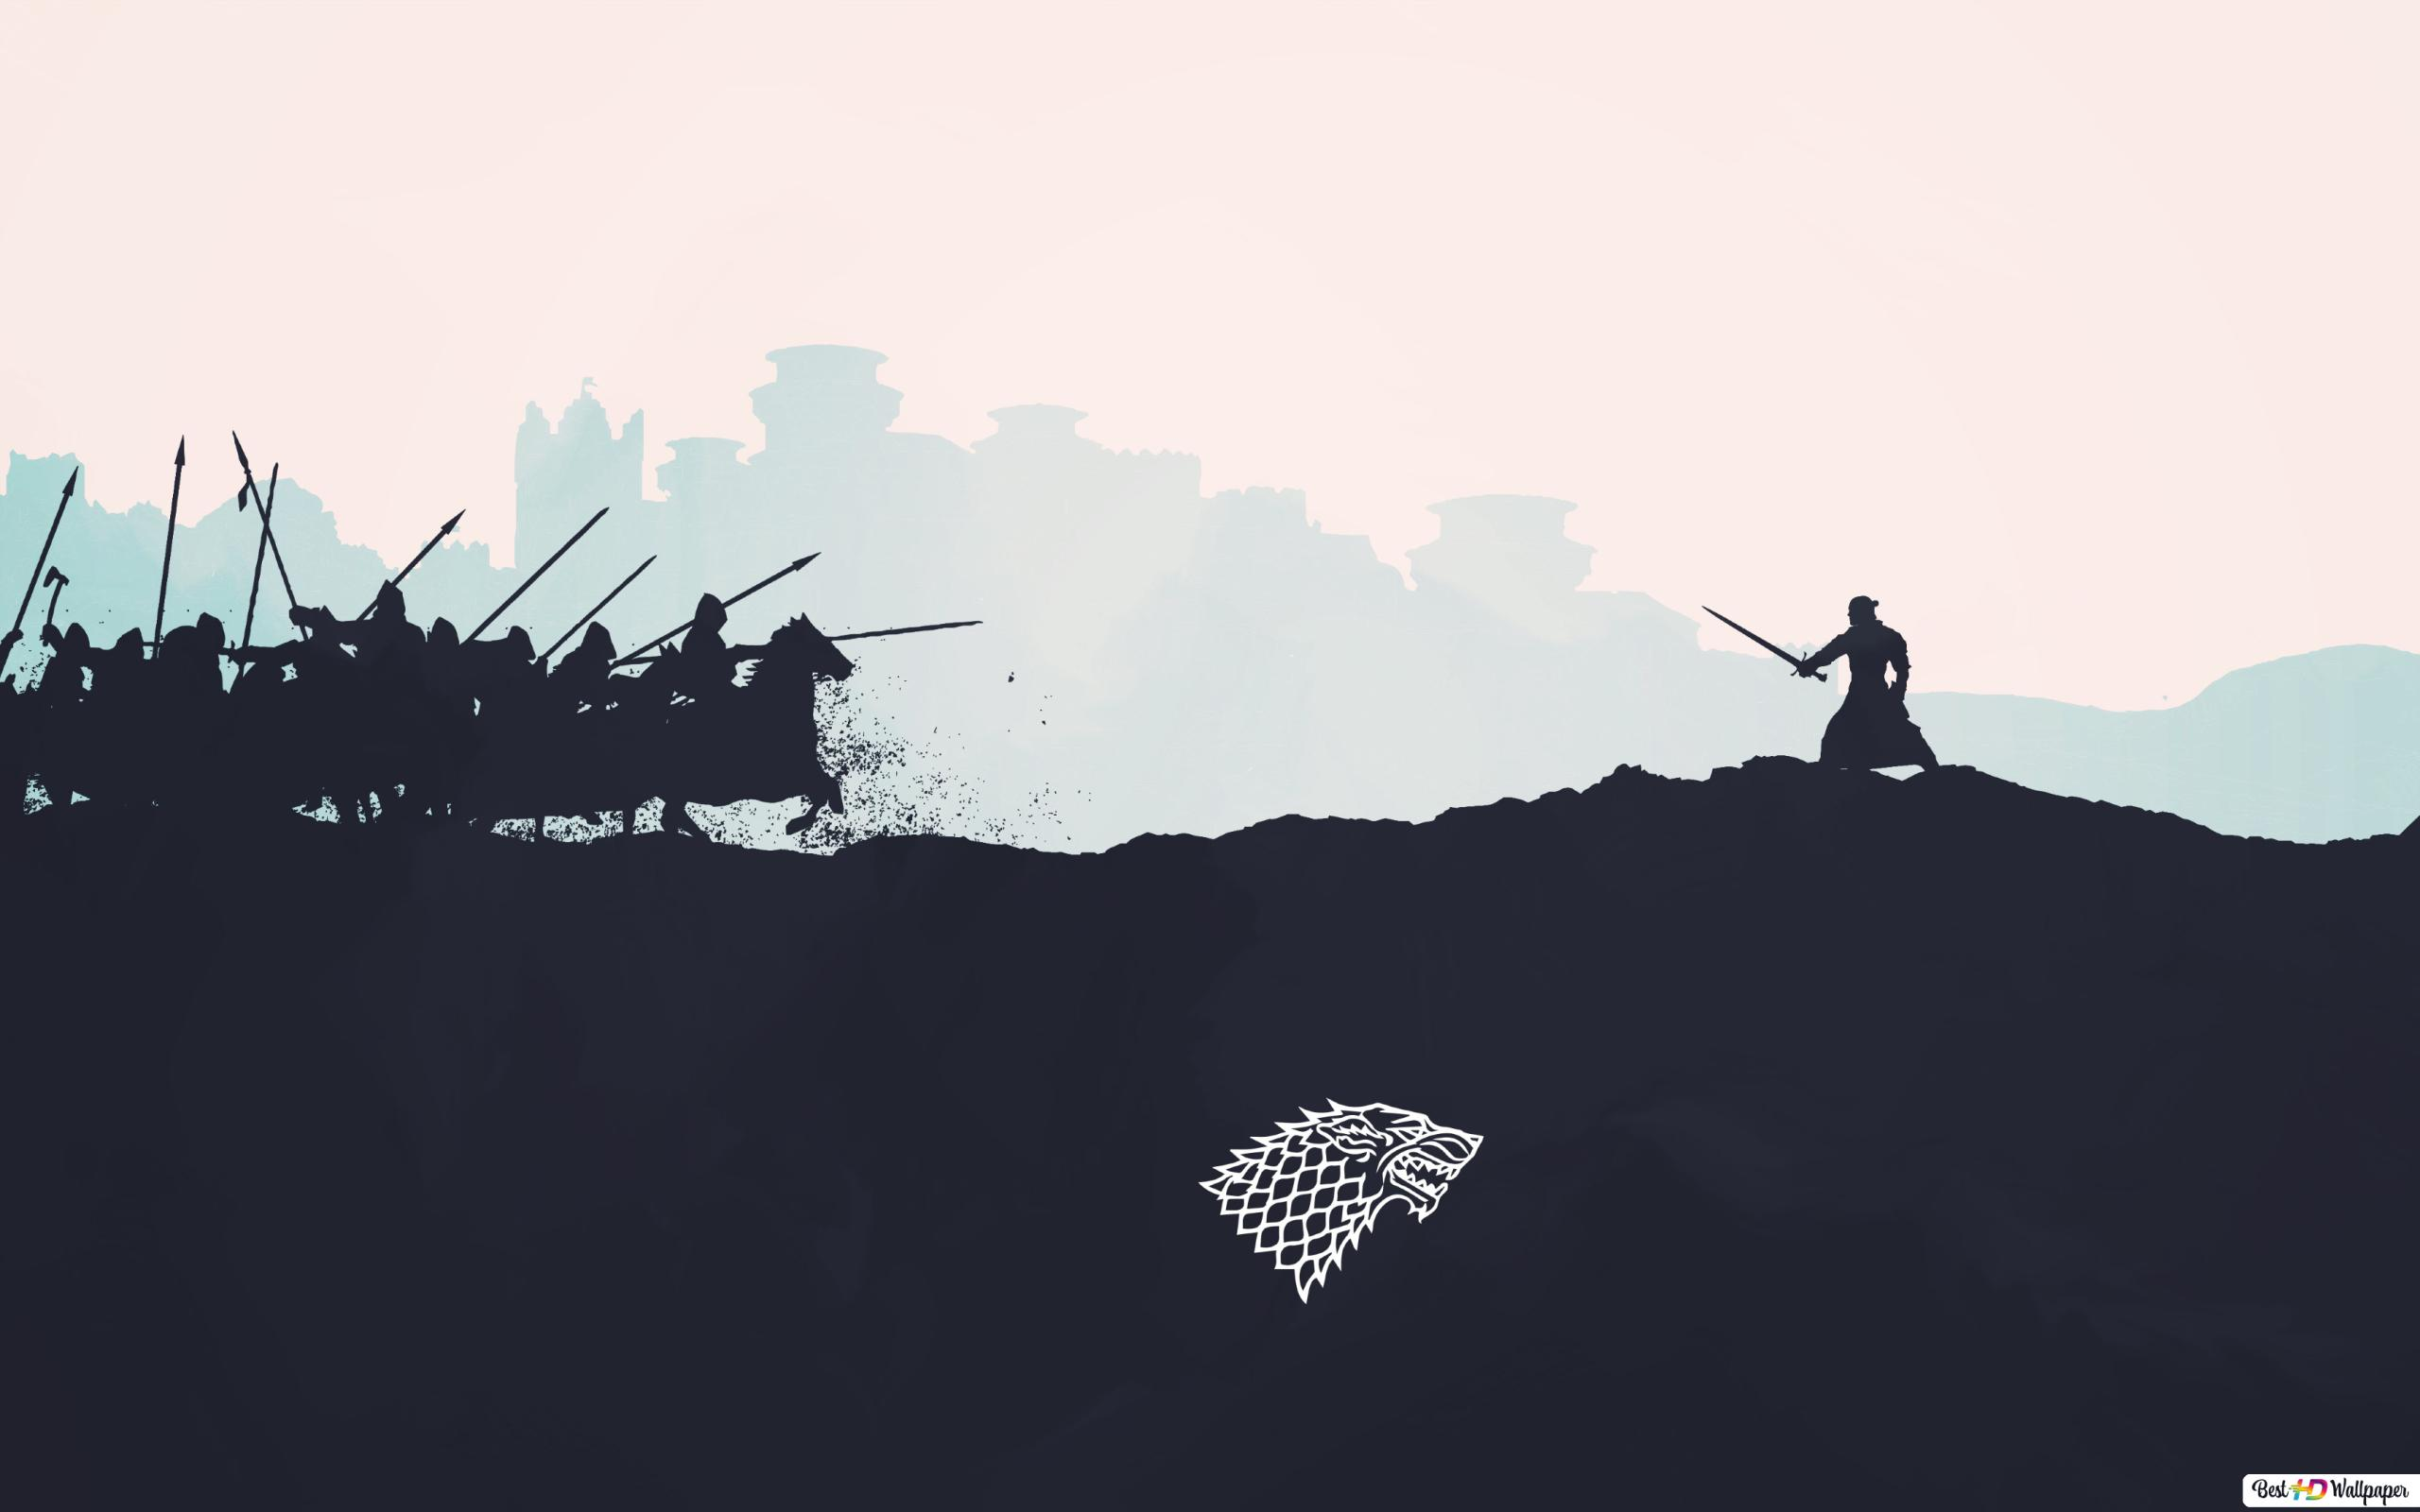 Game Of Thrones House Of Stark Hd Wallpaper Download